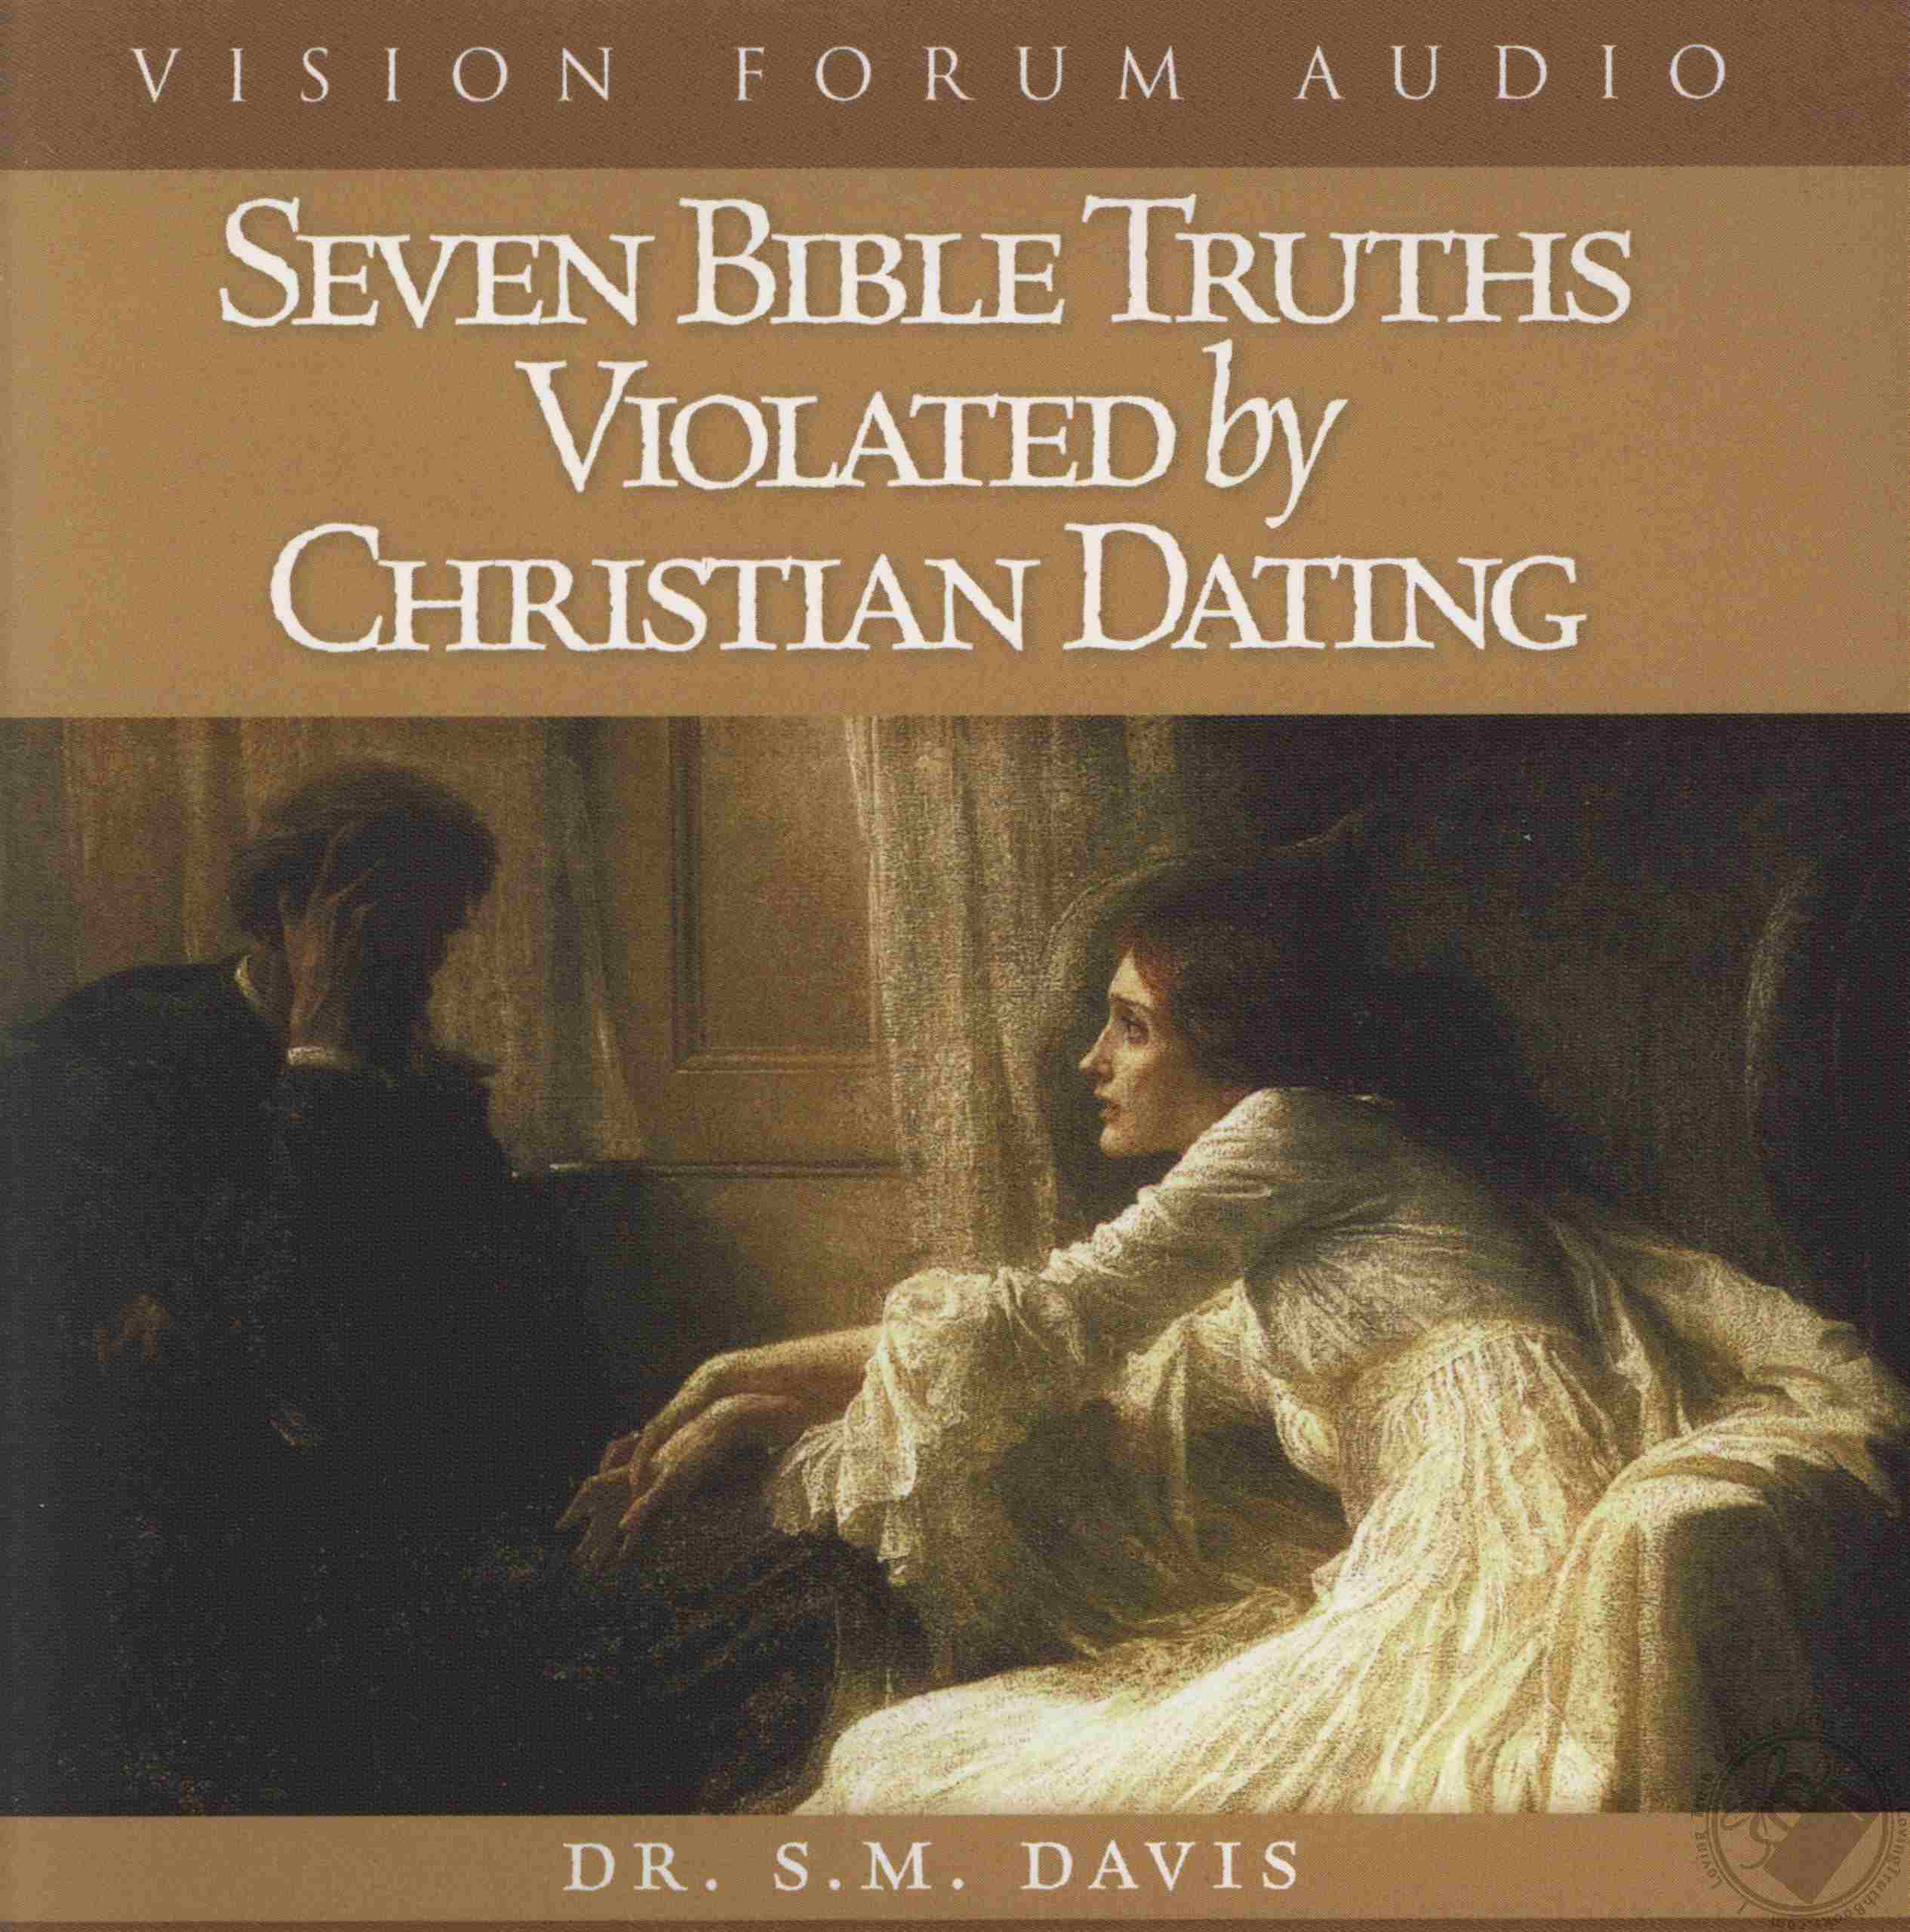 who is nicki minaj dating or married to 2016: bible by christian dating seven truth violated